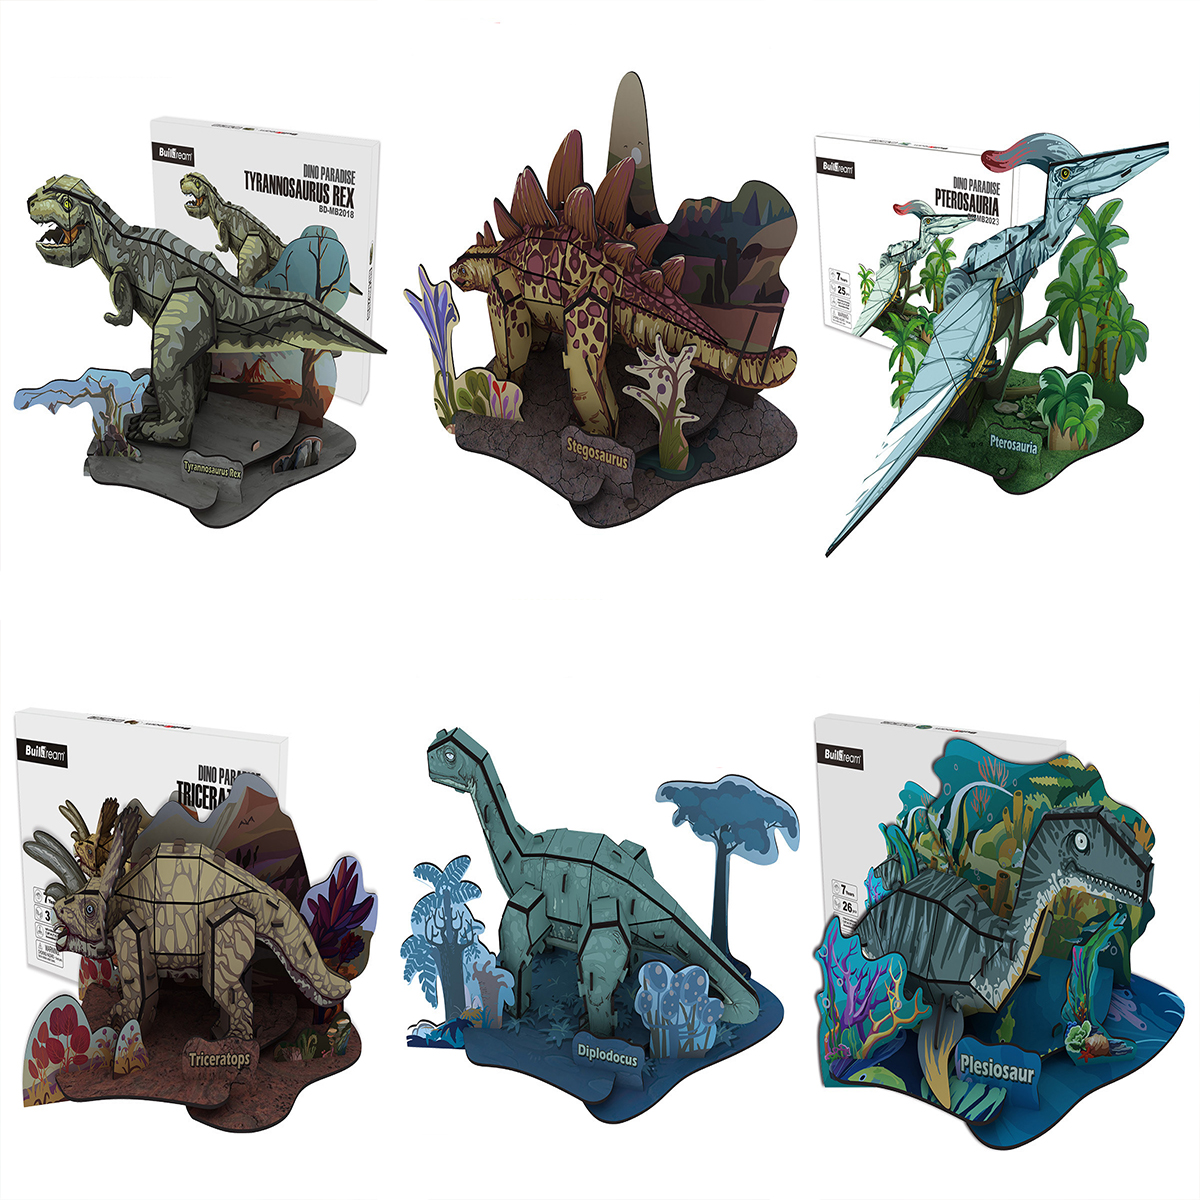 Details about DIY 3D Puzzle Animal Model Foam Board Jurassic Creature  Variety Dinosaur Model